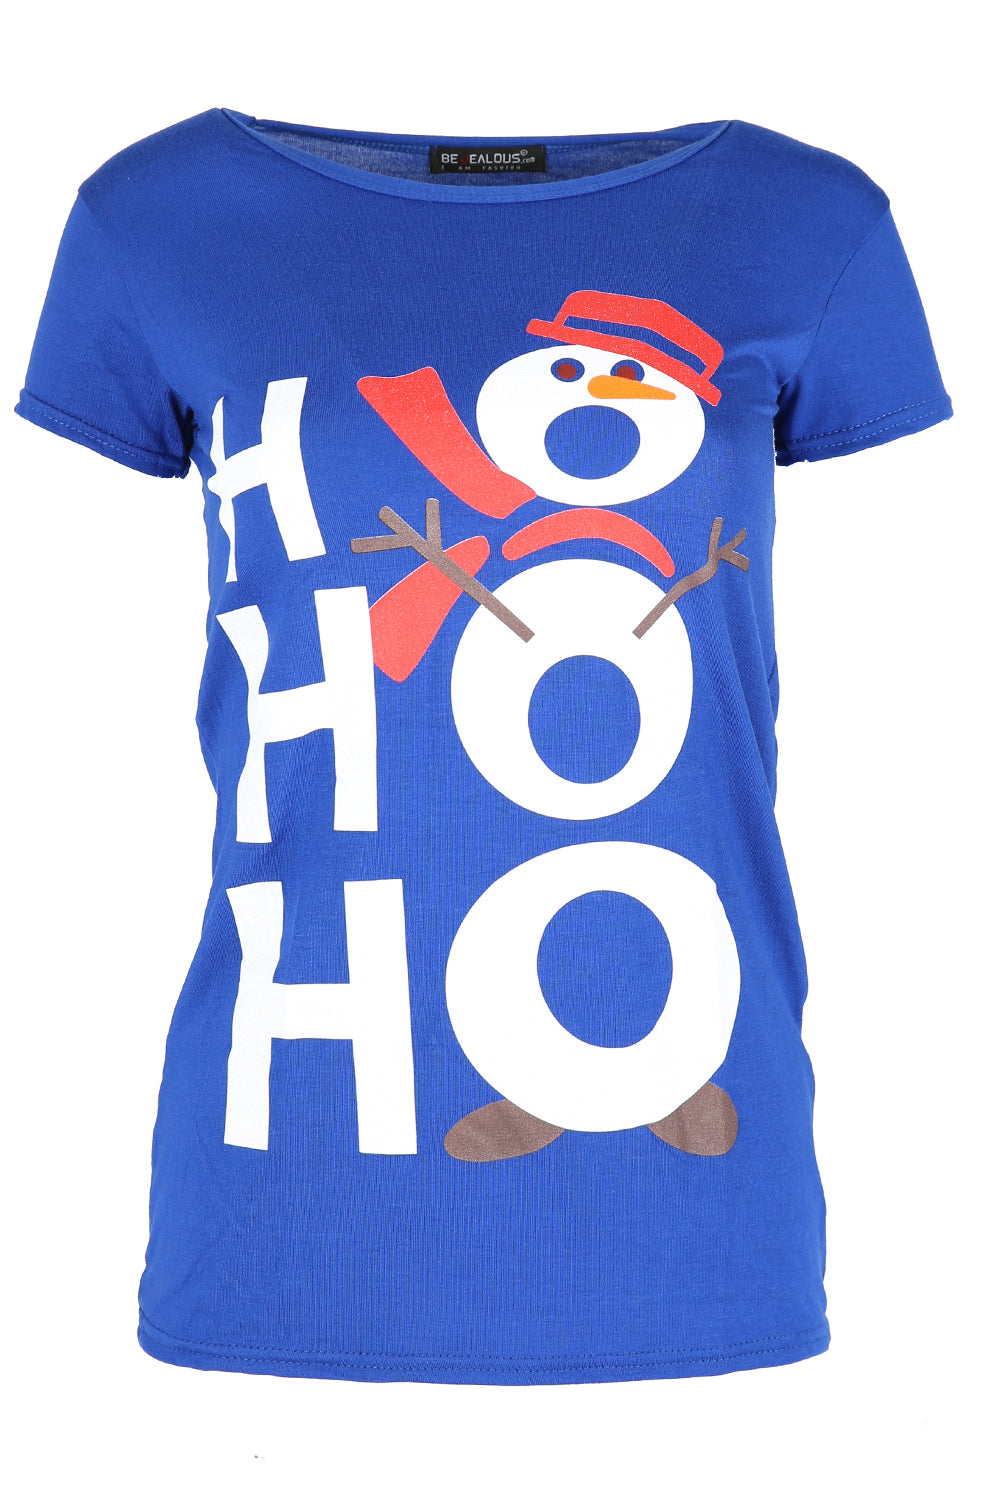 'Hohoho' Snowman Print Red Xmas Top